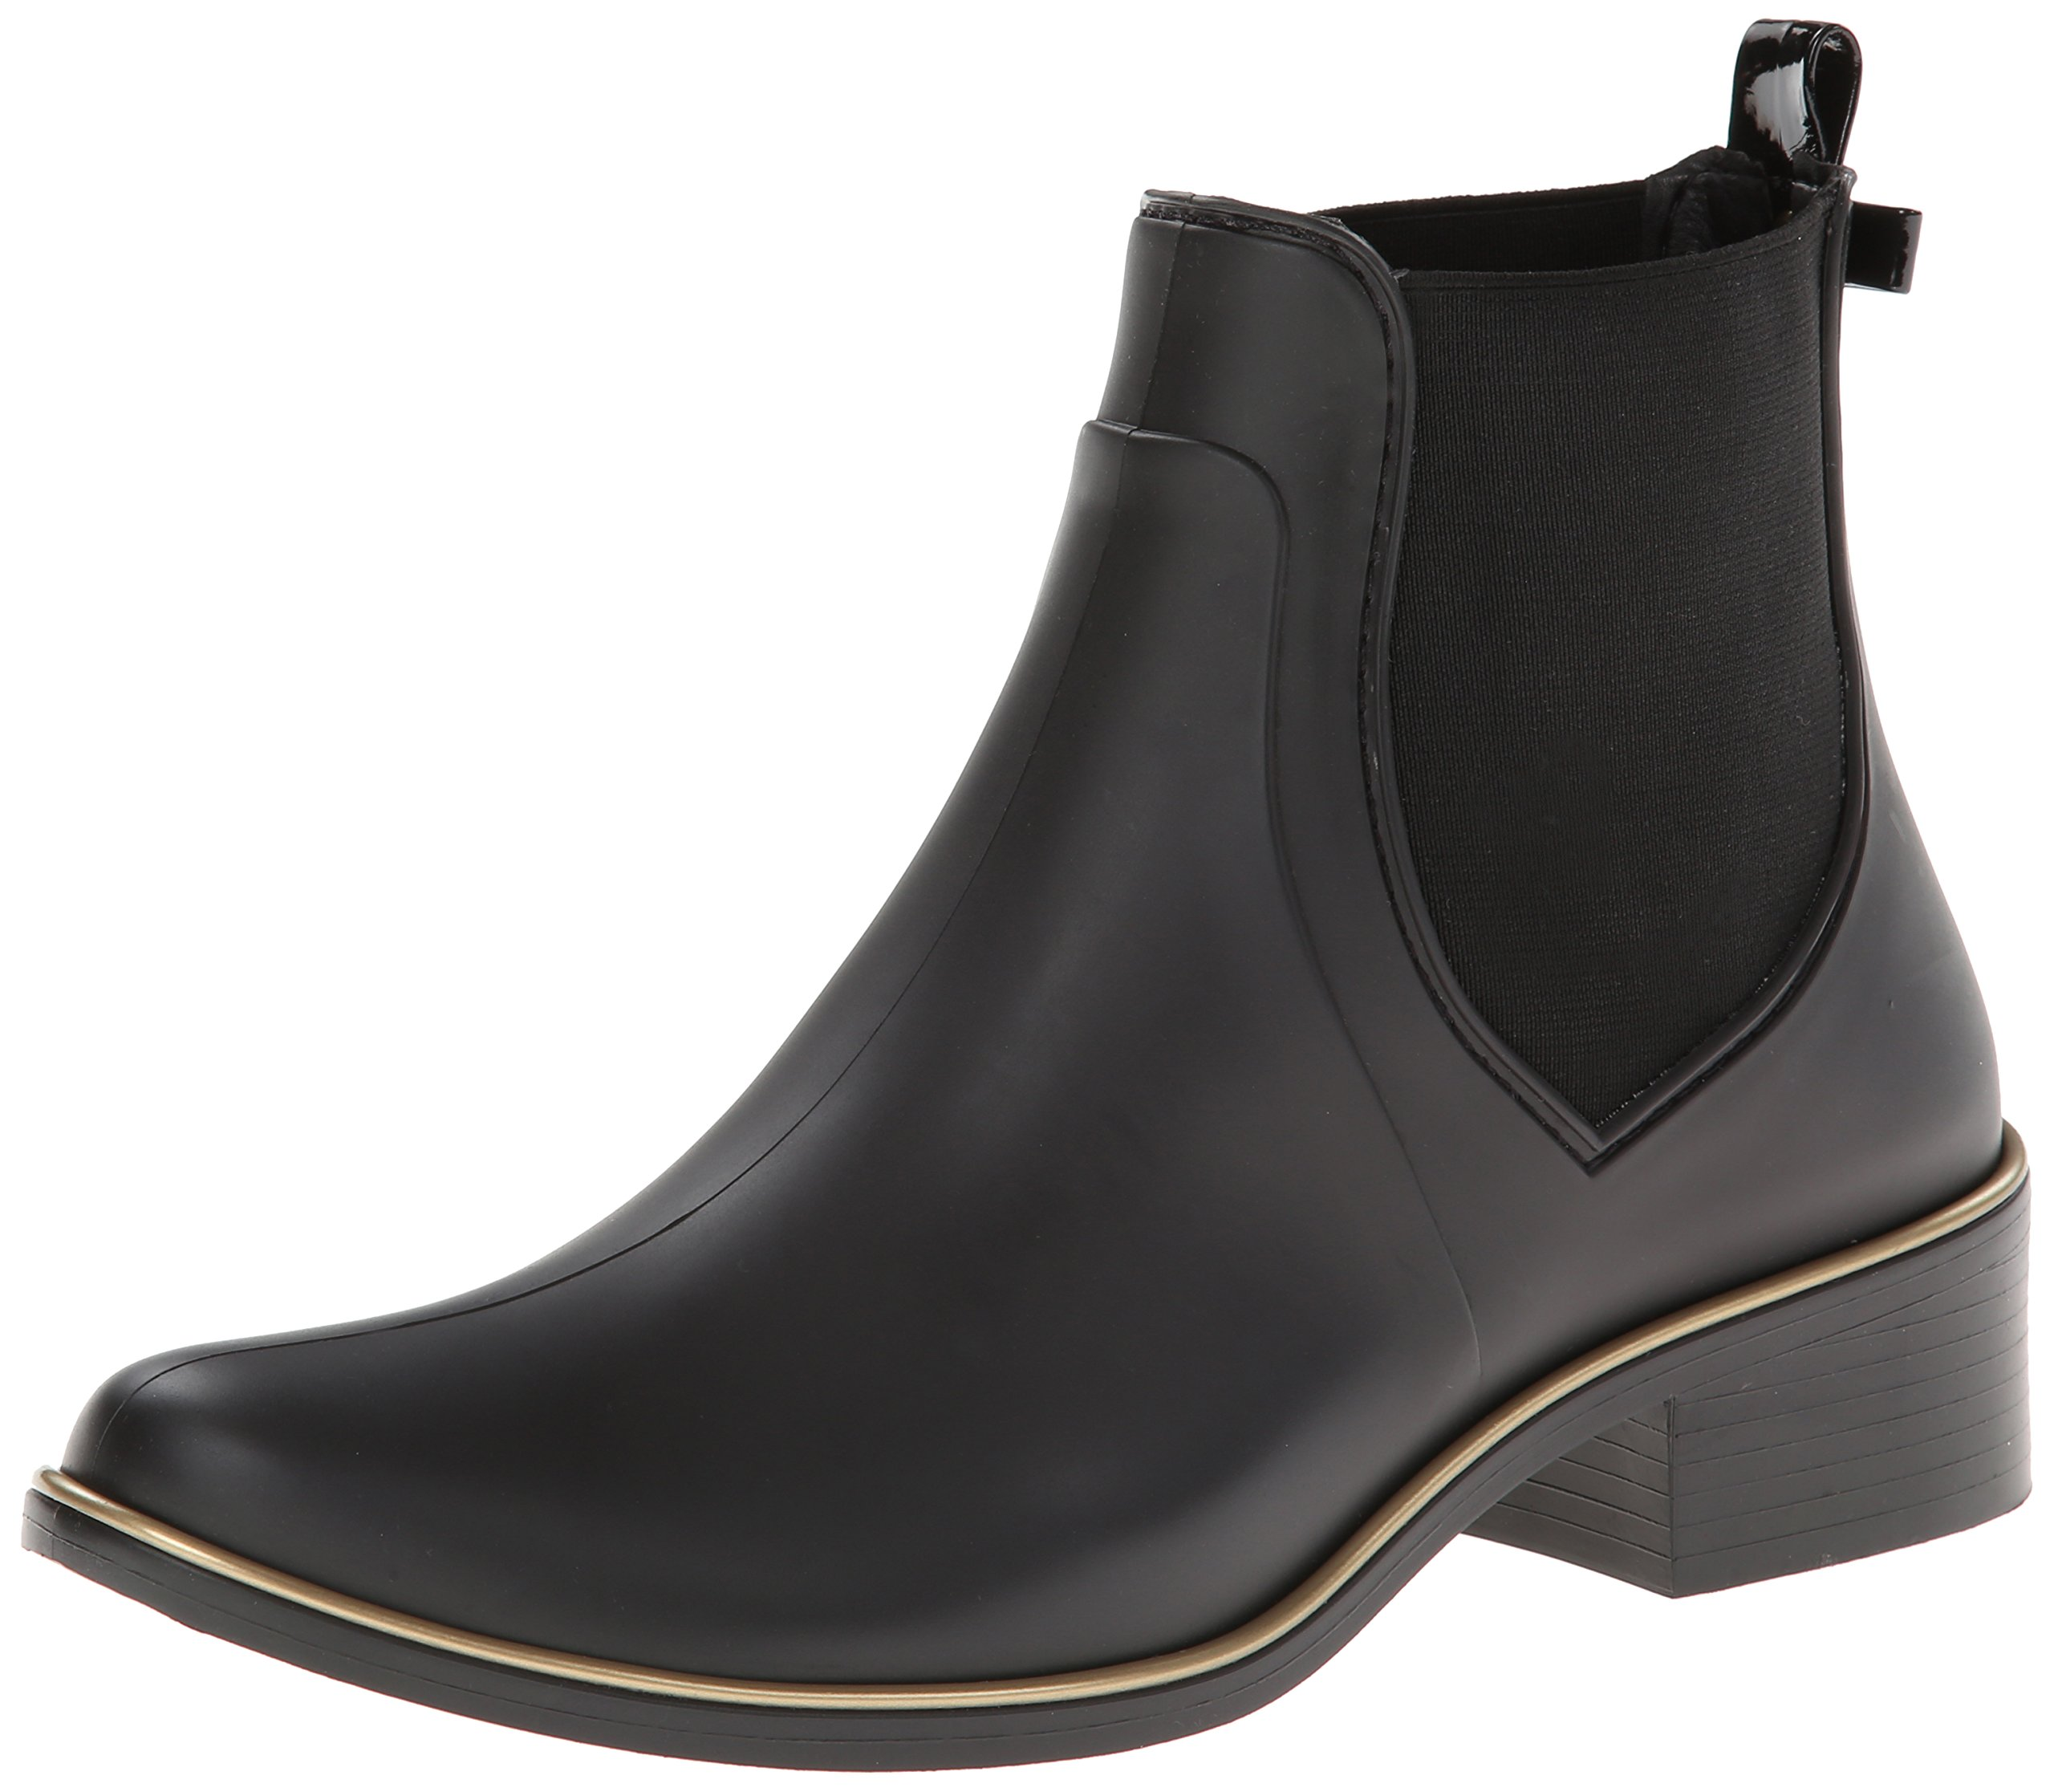 kate spade new york Women's Sedgewick Rain Shoe, Black, 8/9 M